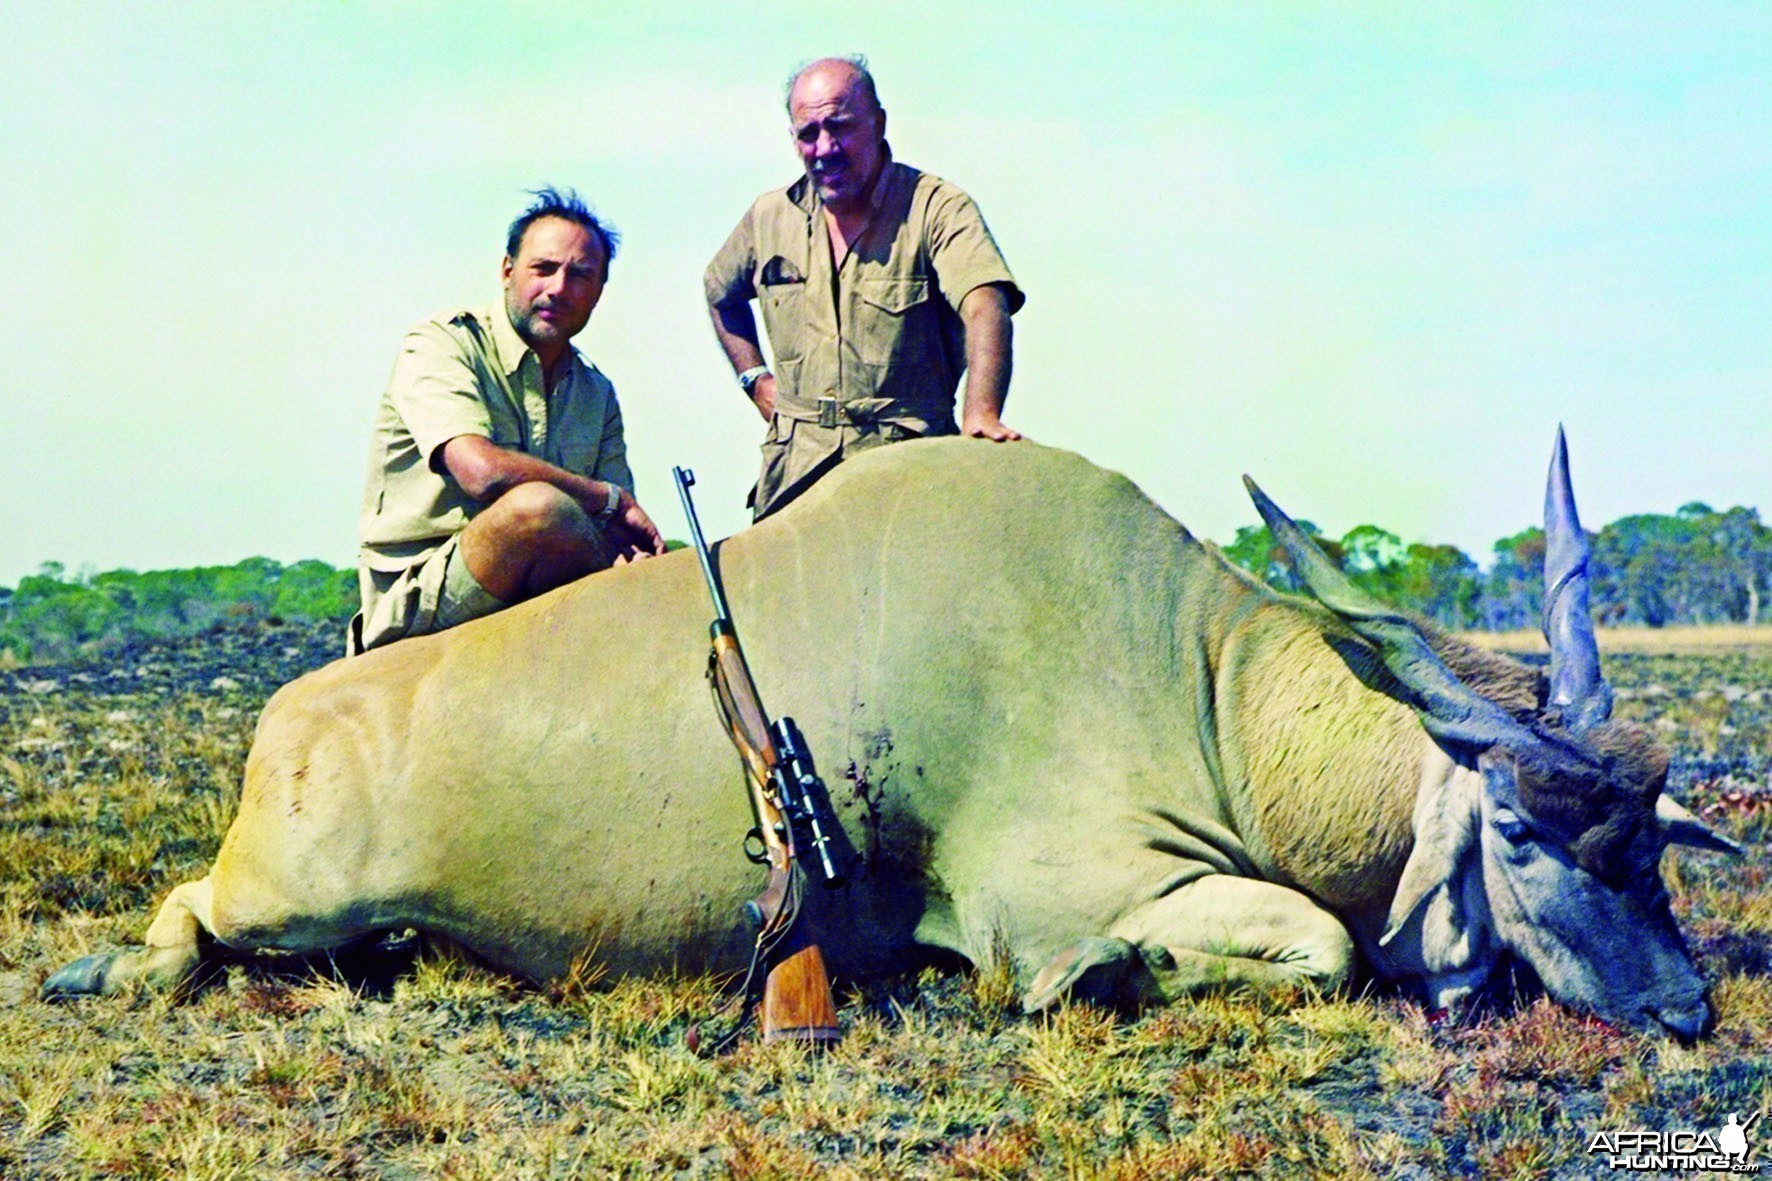 Jorge Alves de Lima with Eland